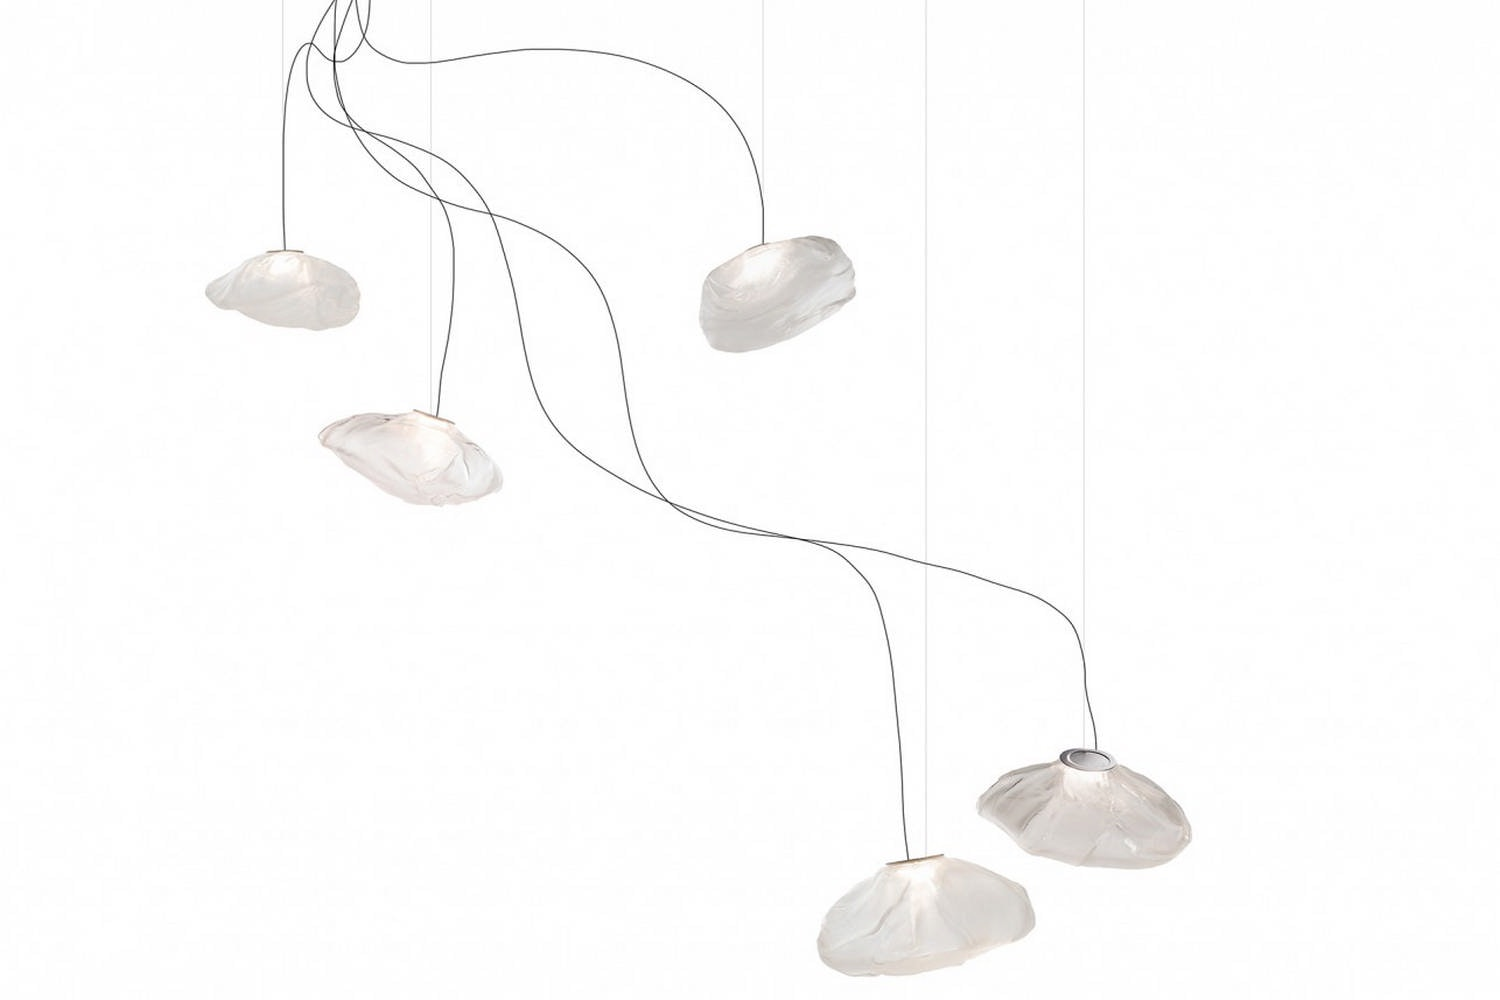 73.5 Semi-Rigid Suspension Lamp by Omer Arbel for Bocci